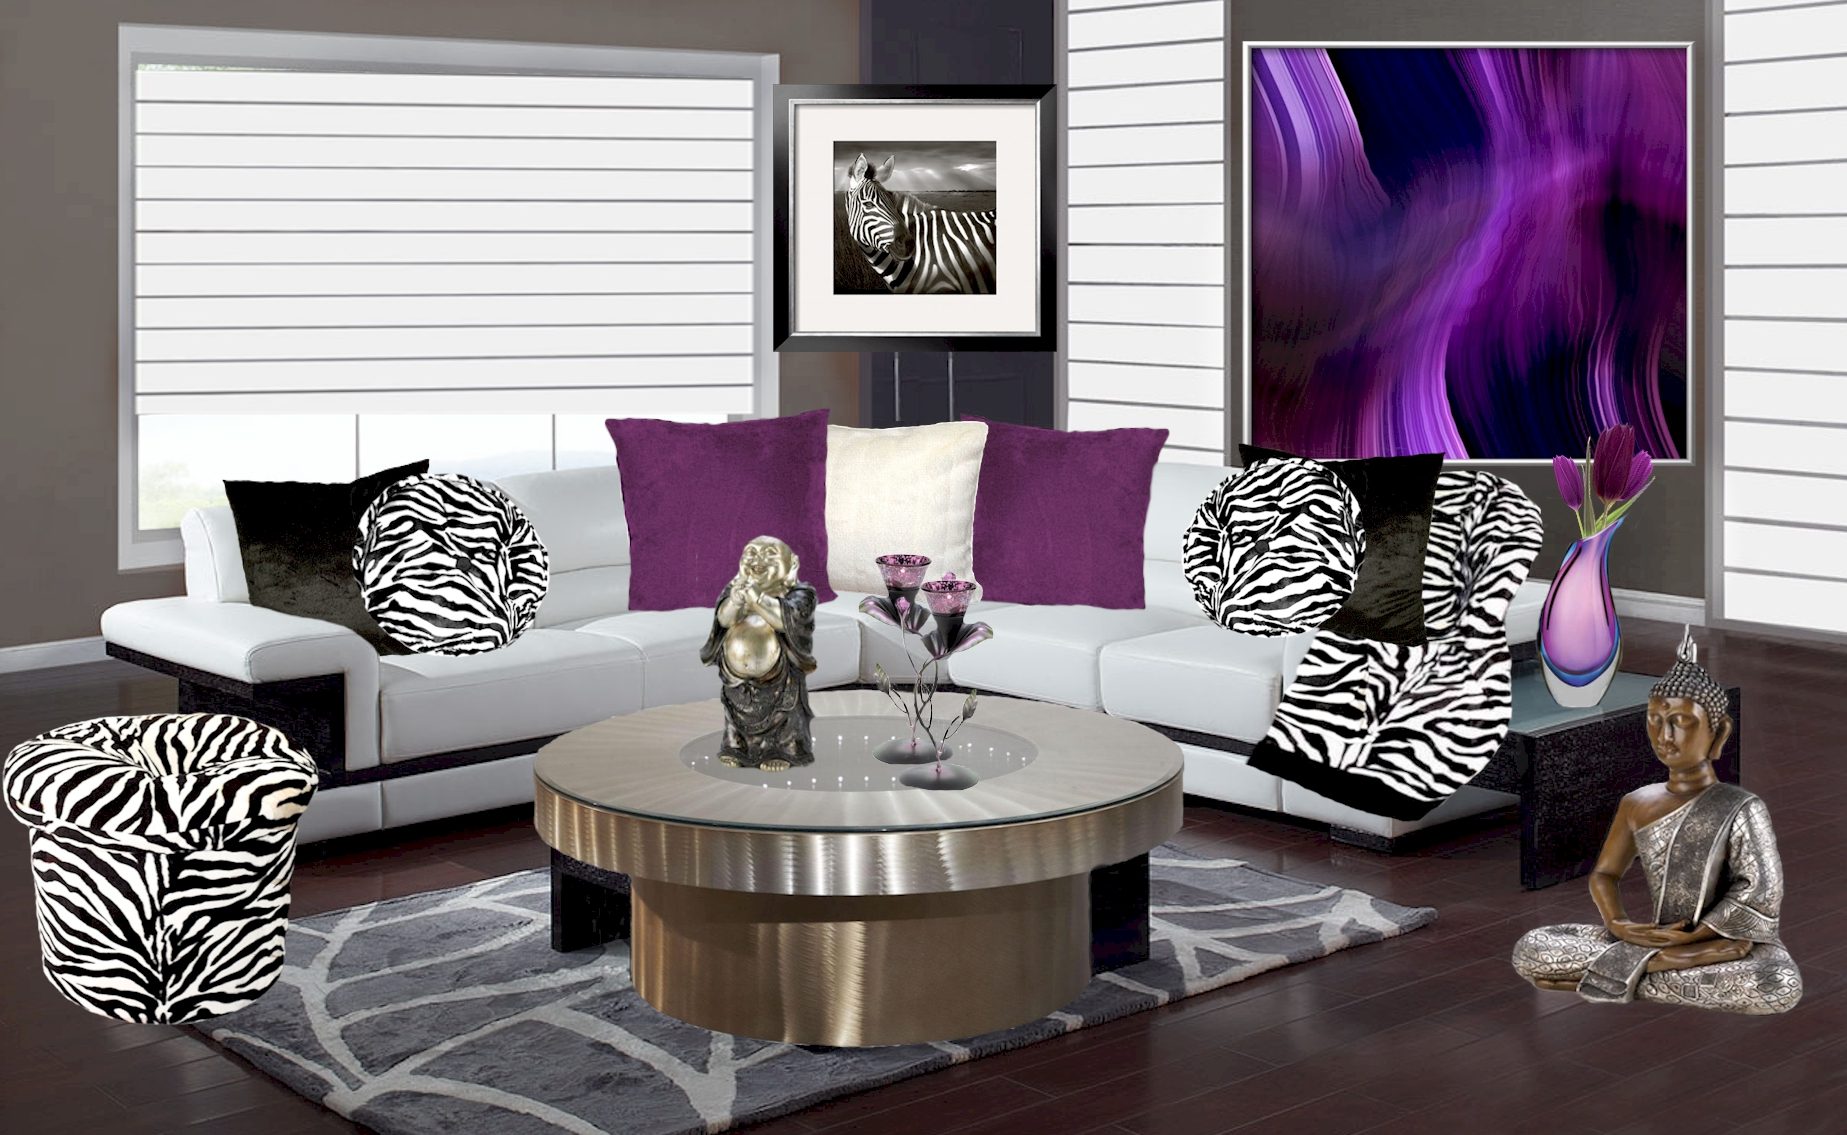 Cheetah Print Living Room Ideas Animalg Zebra Design pertaining to 13 Smart Initiatives of How to Improve Zebra Print Living Room Set